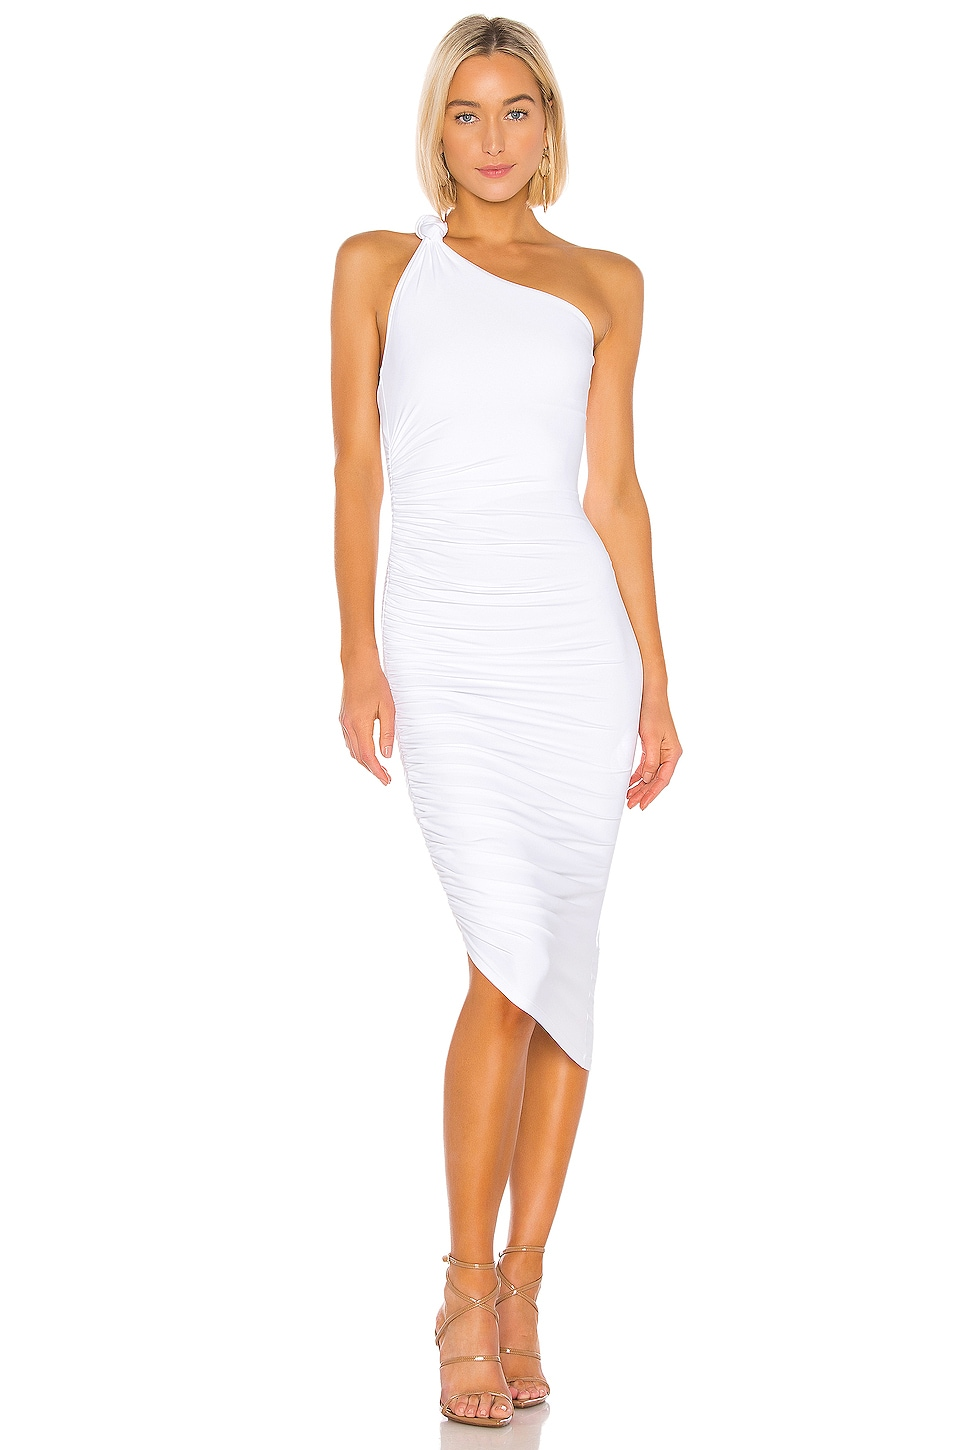 Alix ALIX CELESTE DRESS IN WHITE.